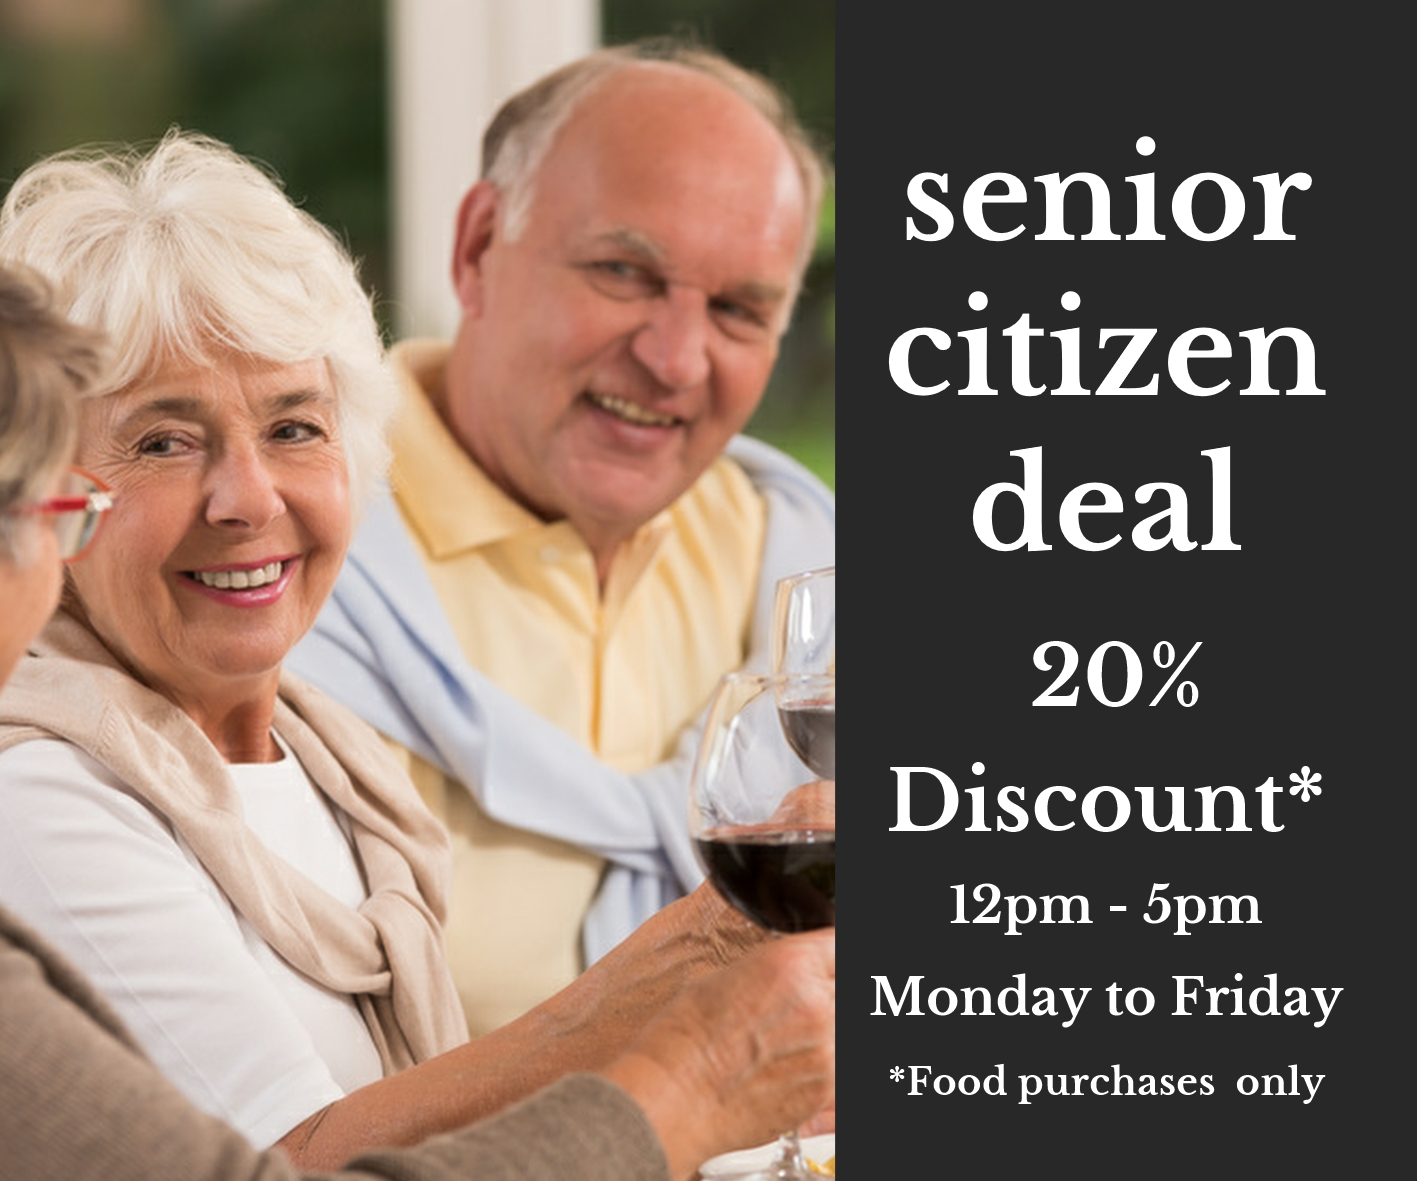 senior citizens deal 20% off food purchases monday to friday lunchtime